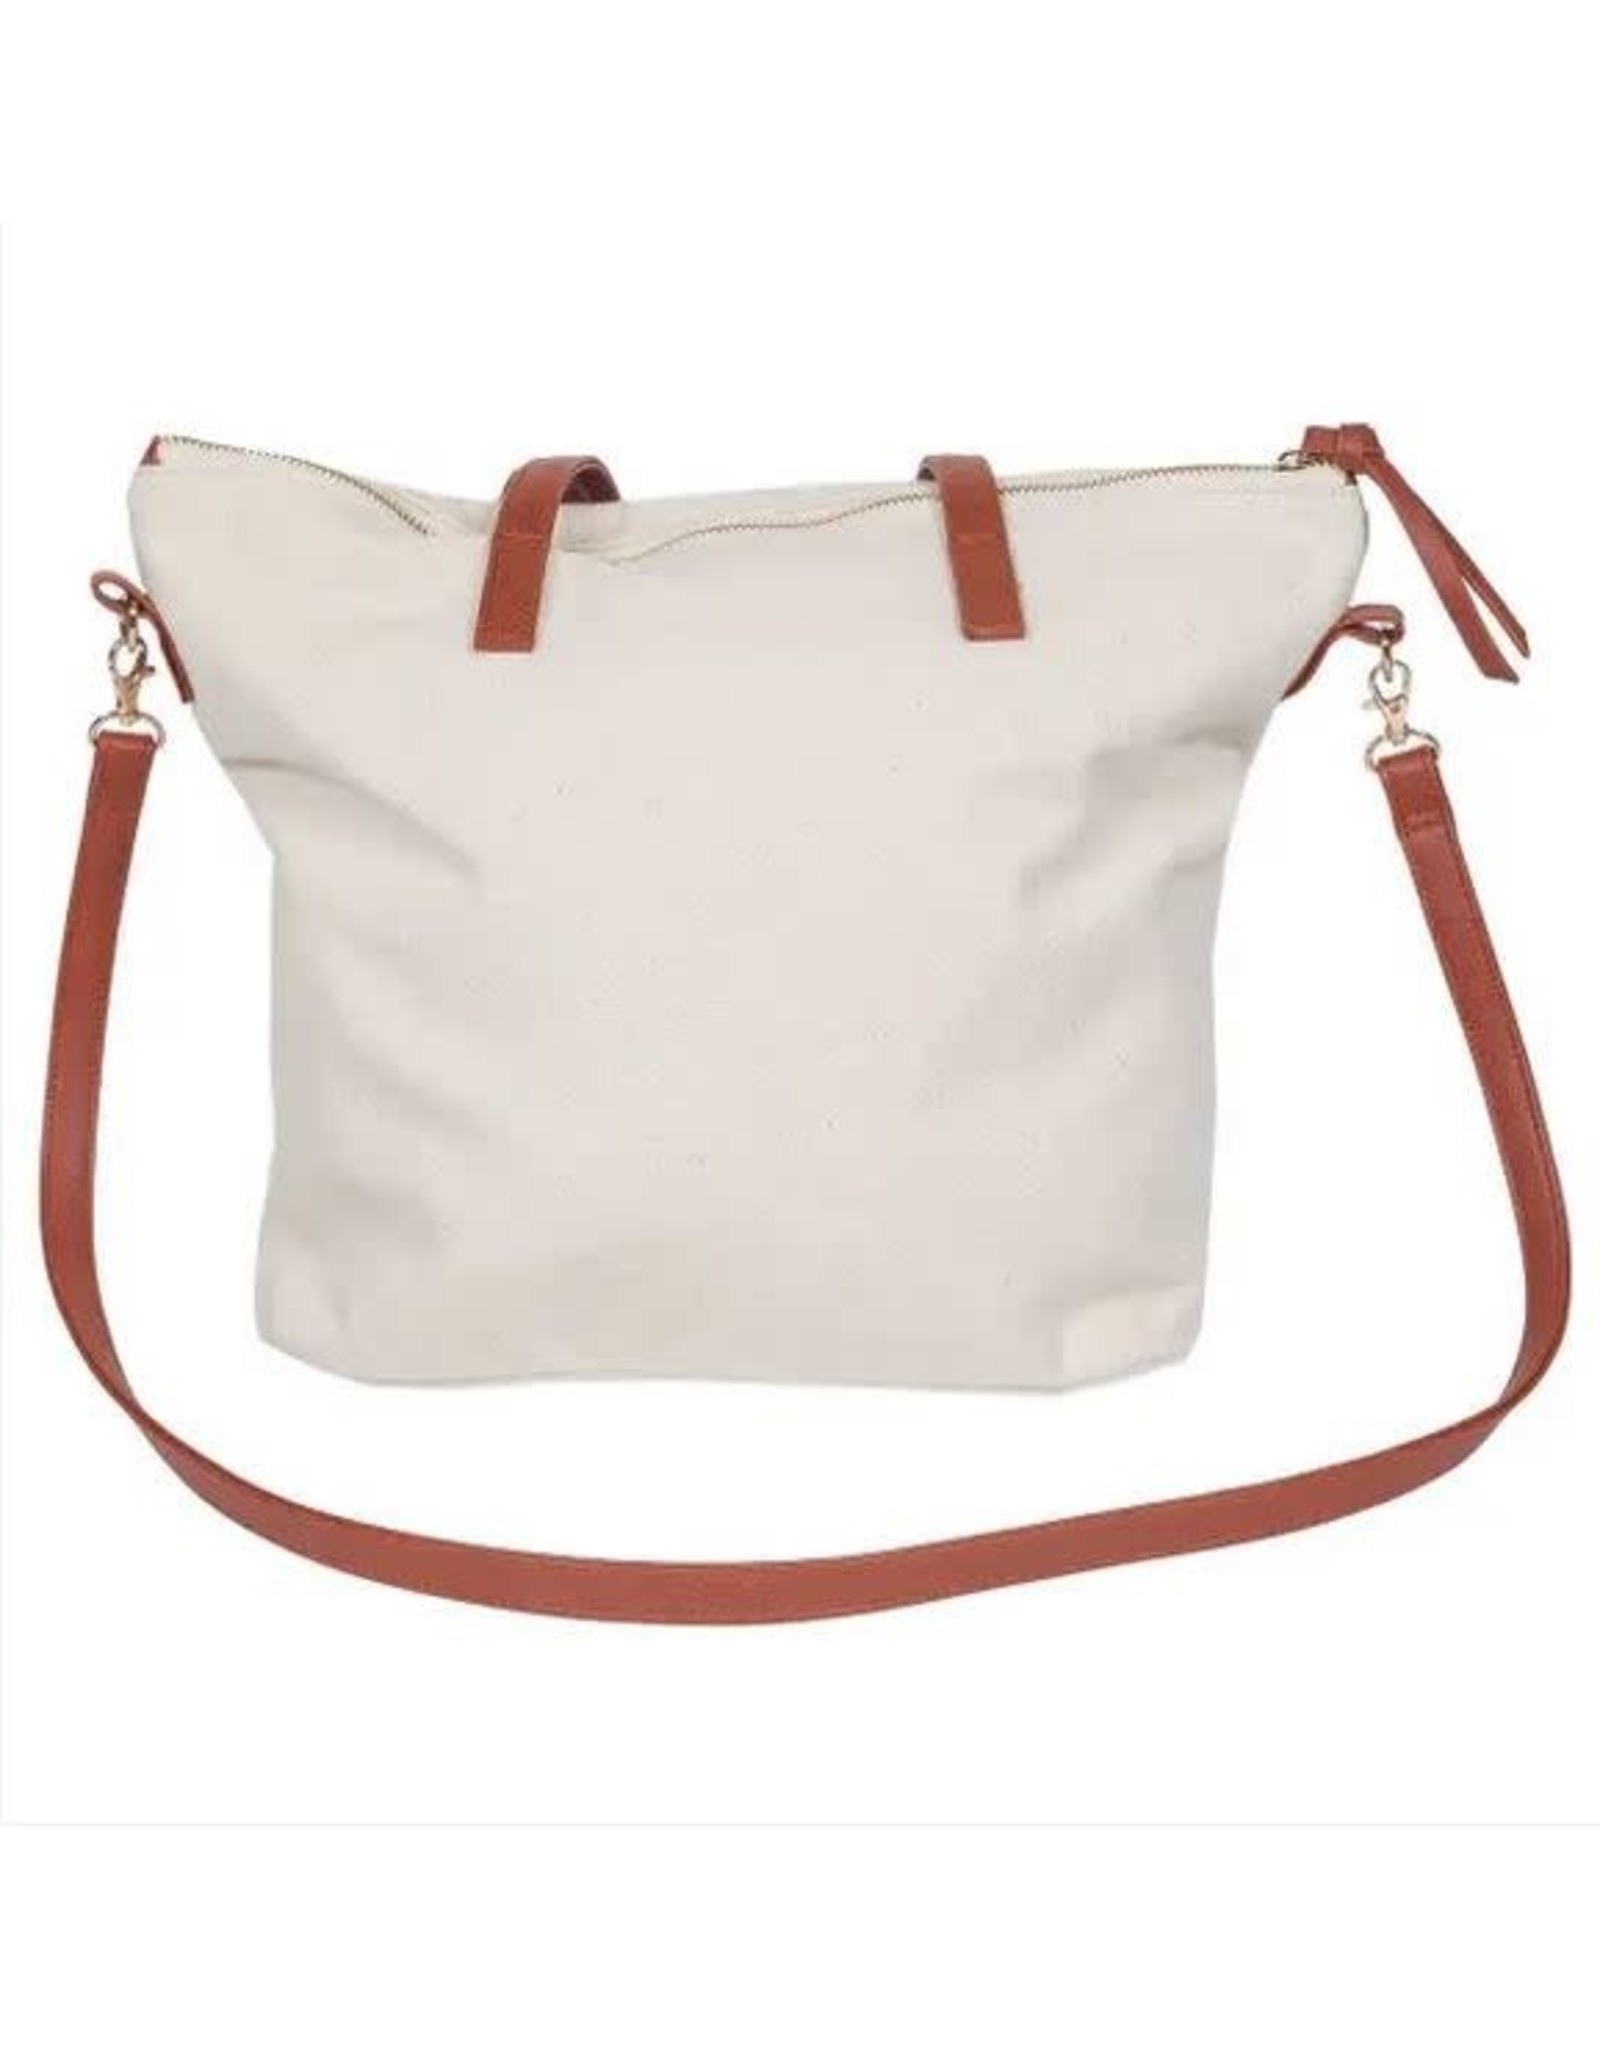 PARADE STREET PRODUCTS SOLOMA CANVAS TOTE